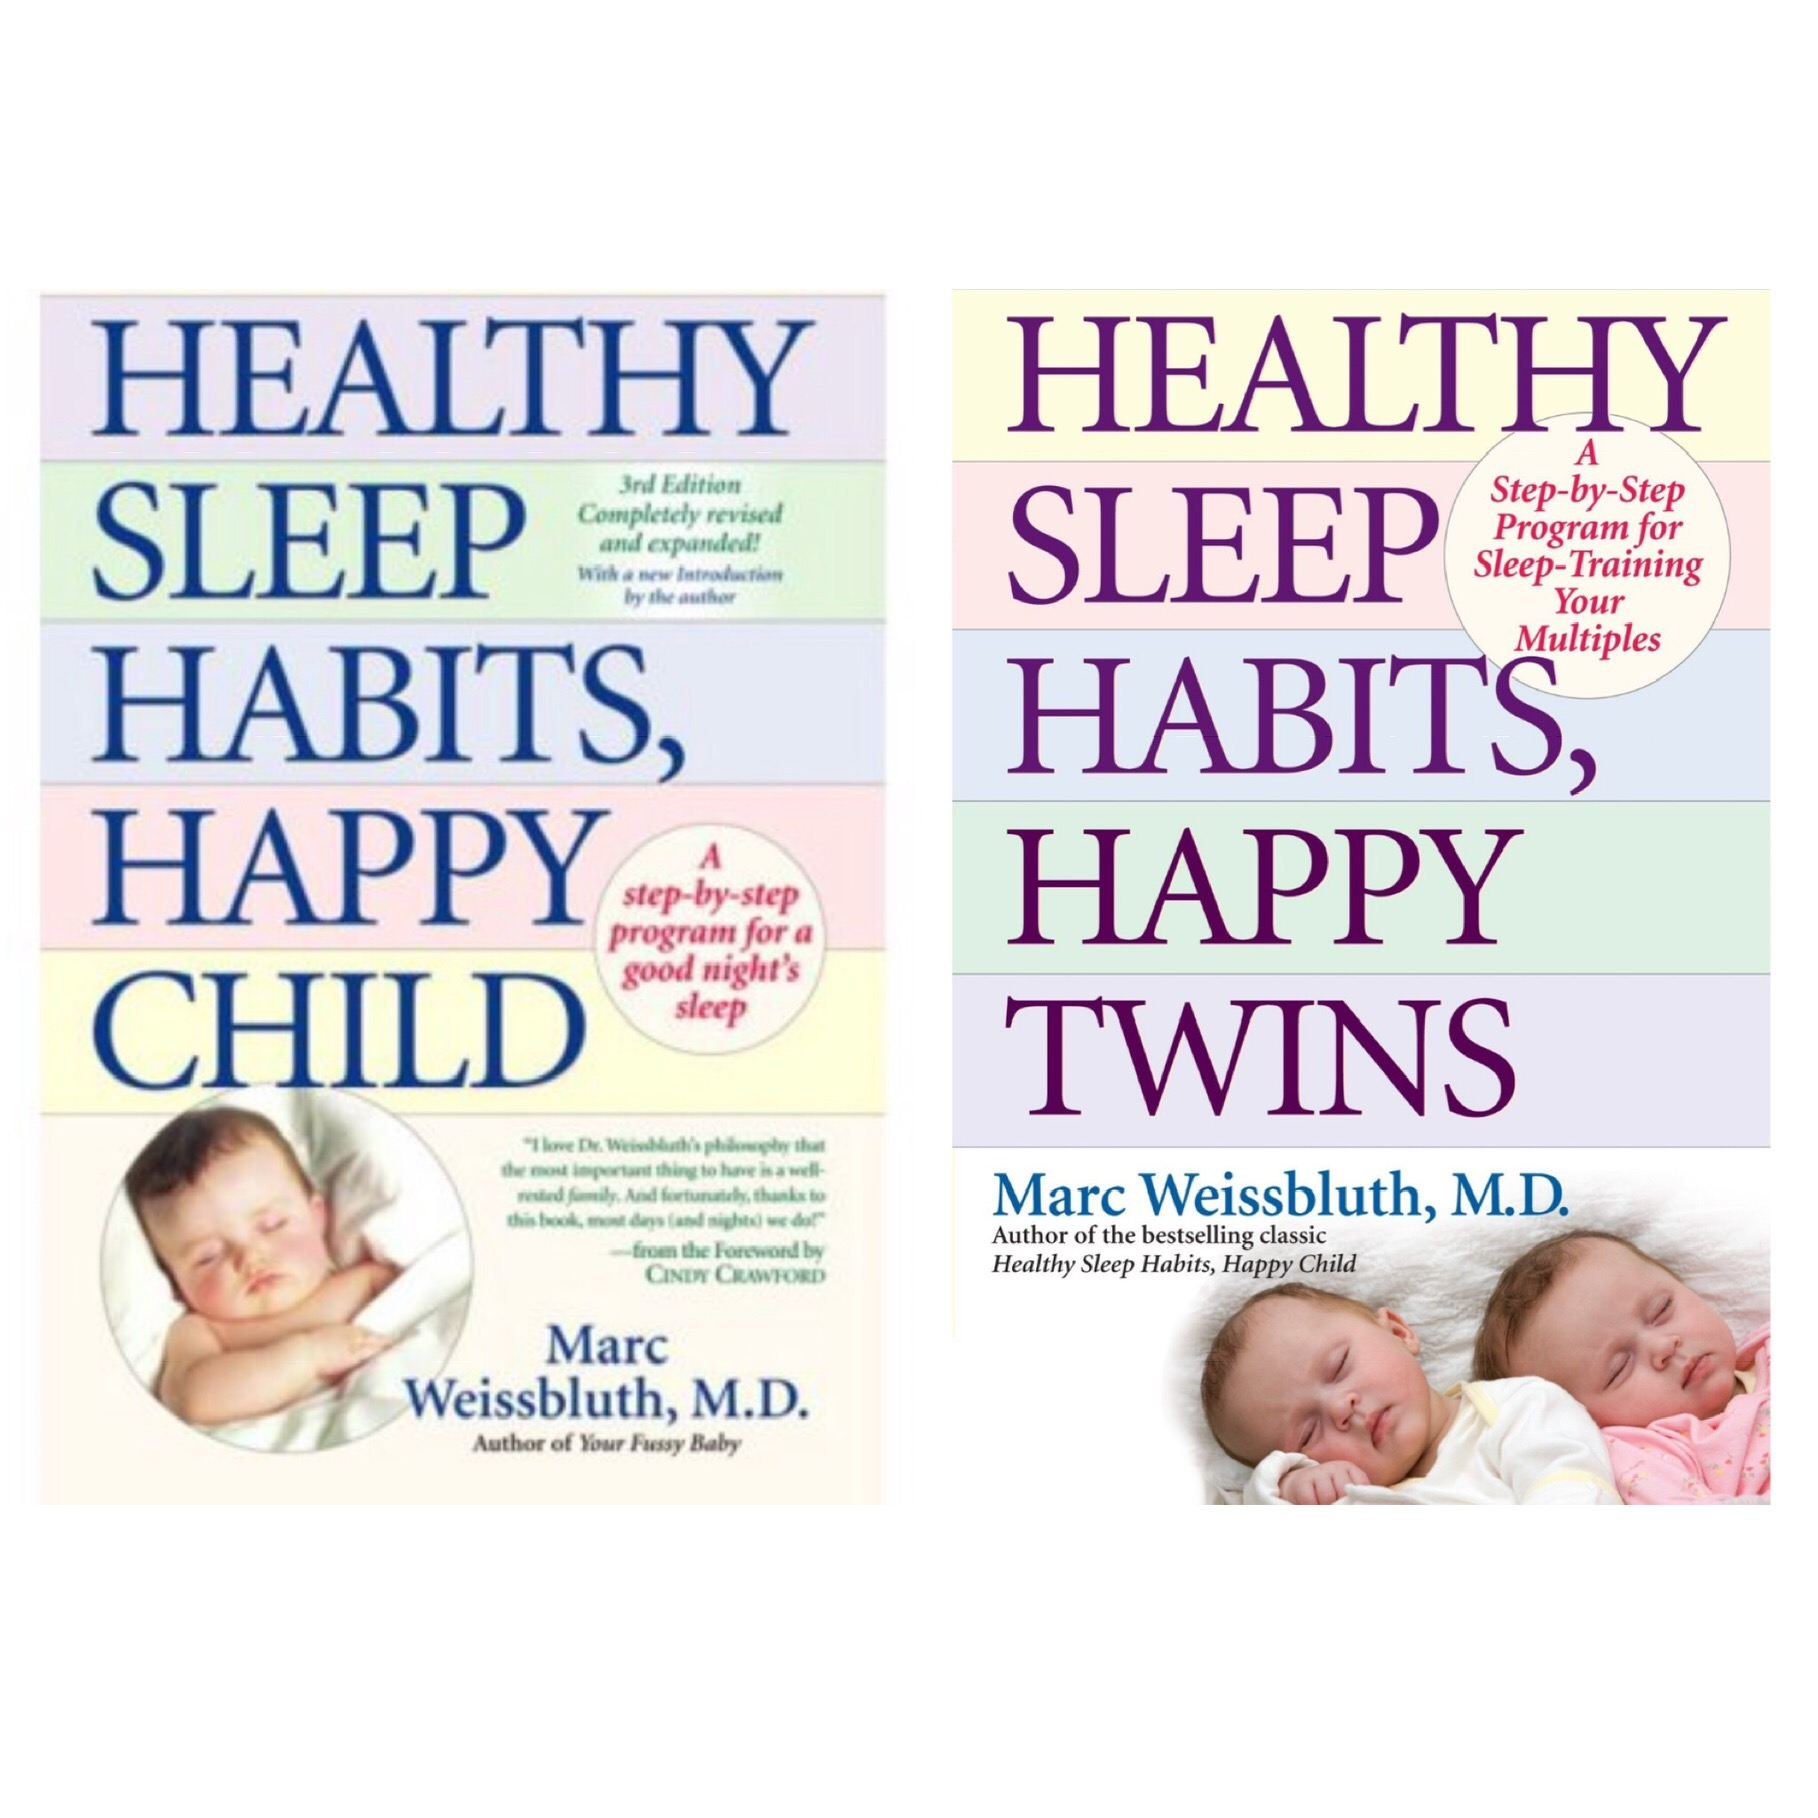 HEALTHY SLEEP HABITS, HAPPY CHILDby Marc Weissbluth, M.D. - sleep training bible by Reknowned guru, Dr. Marc Weissbluth▶️ For Twins - Click HERE